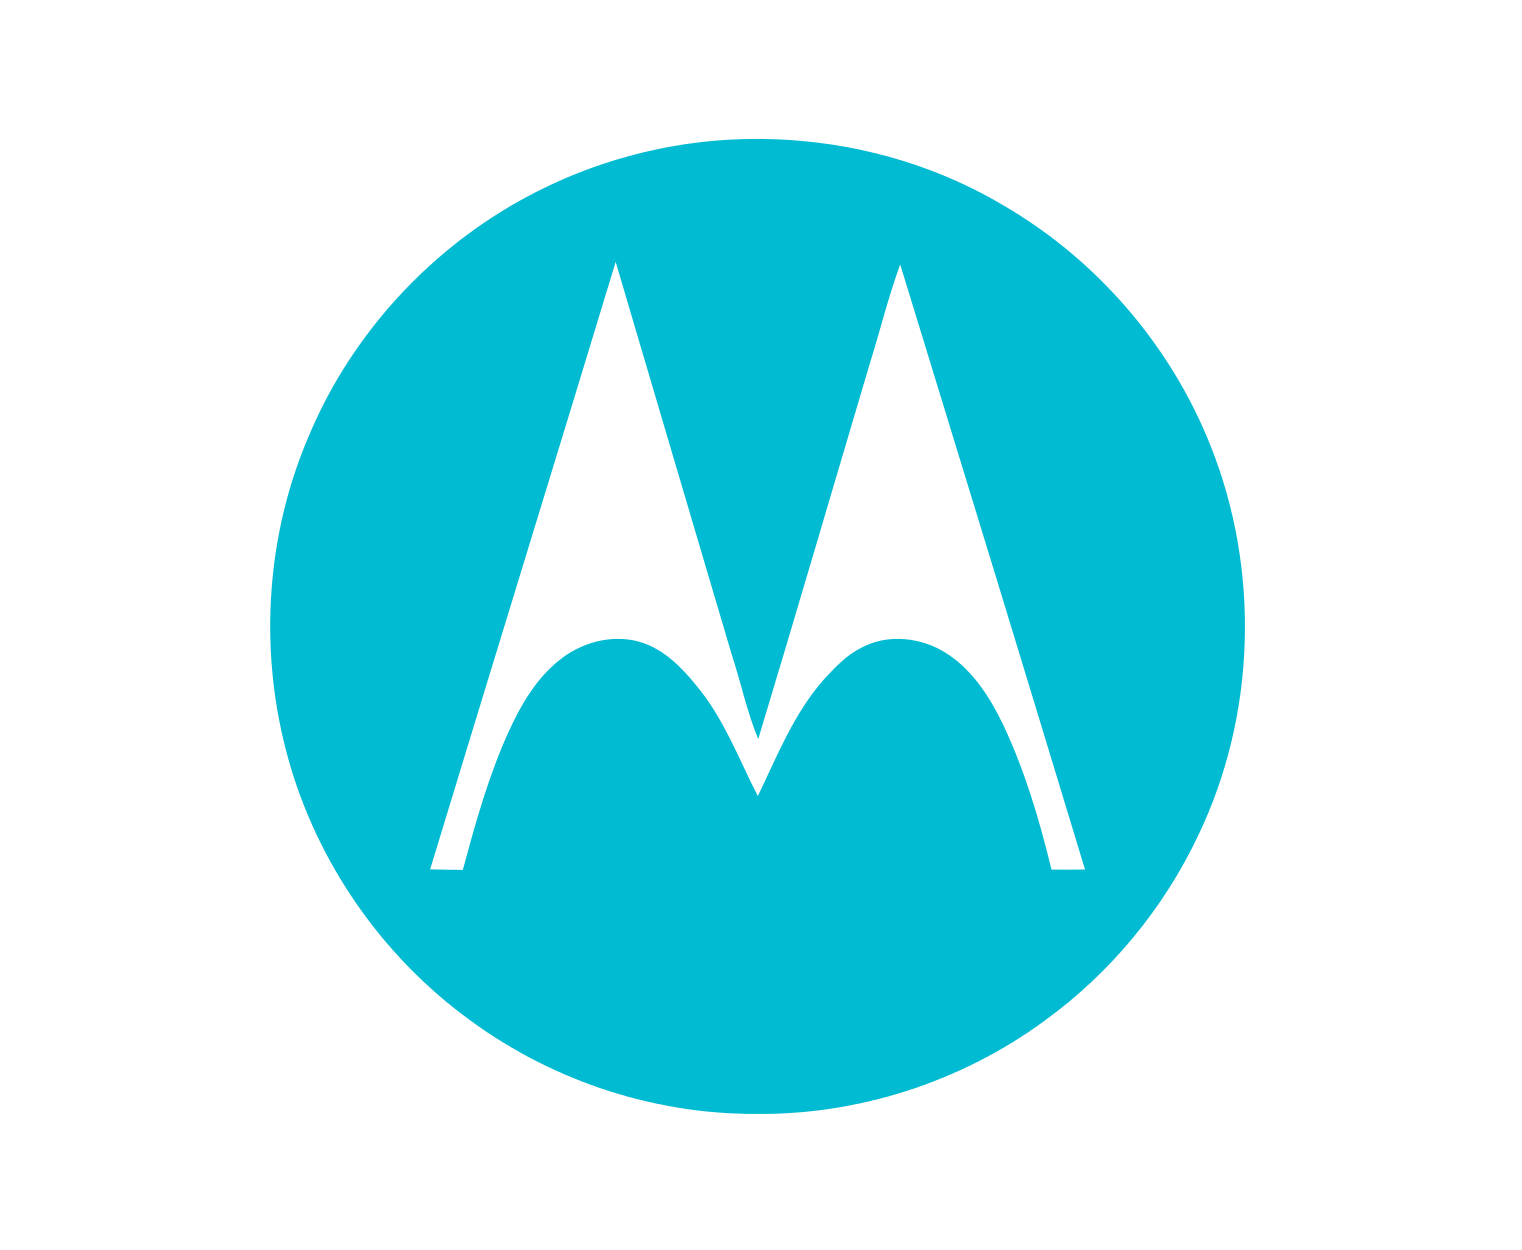 Motorola Logo - Motorola Logo, Motorola Symbol, History and Evolution